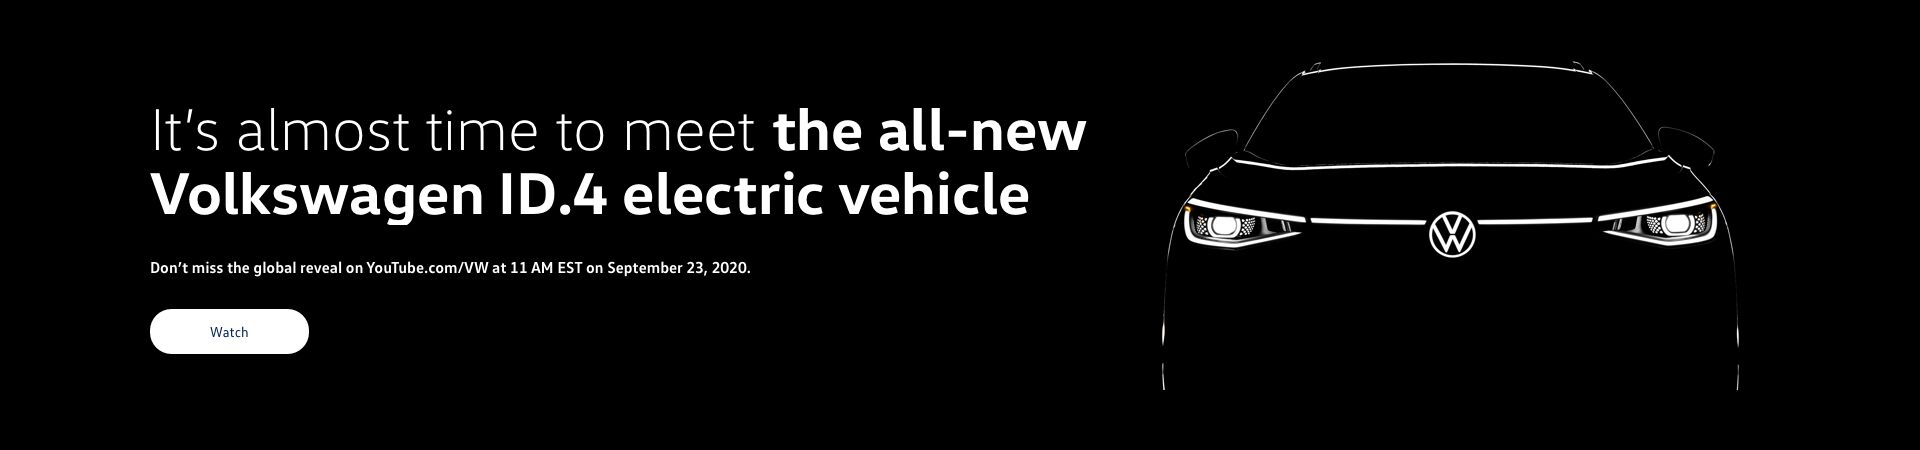 All-new Volkswagen ID.4 electric vehicle